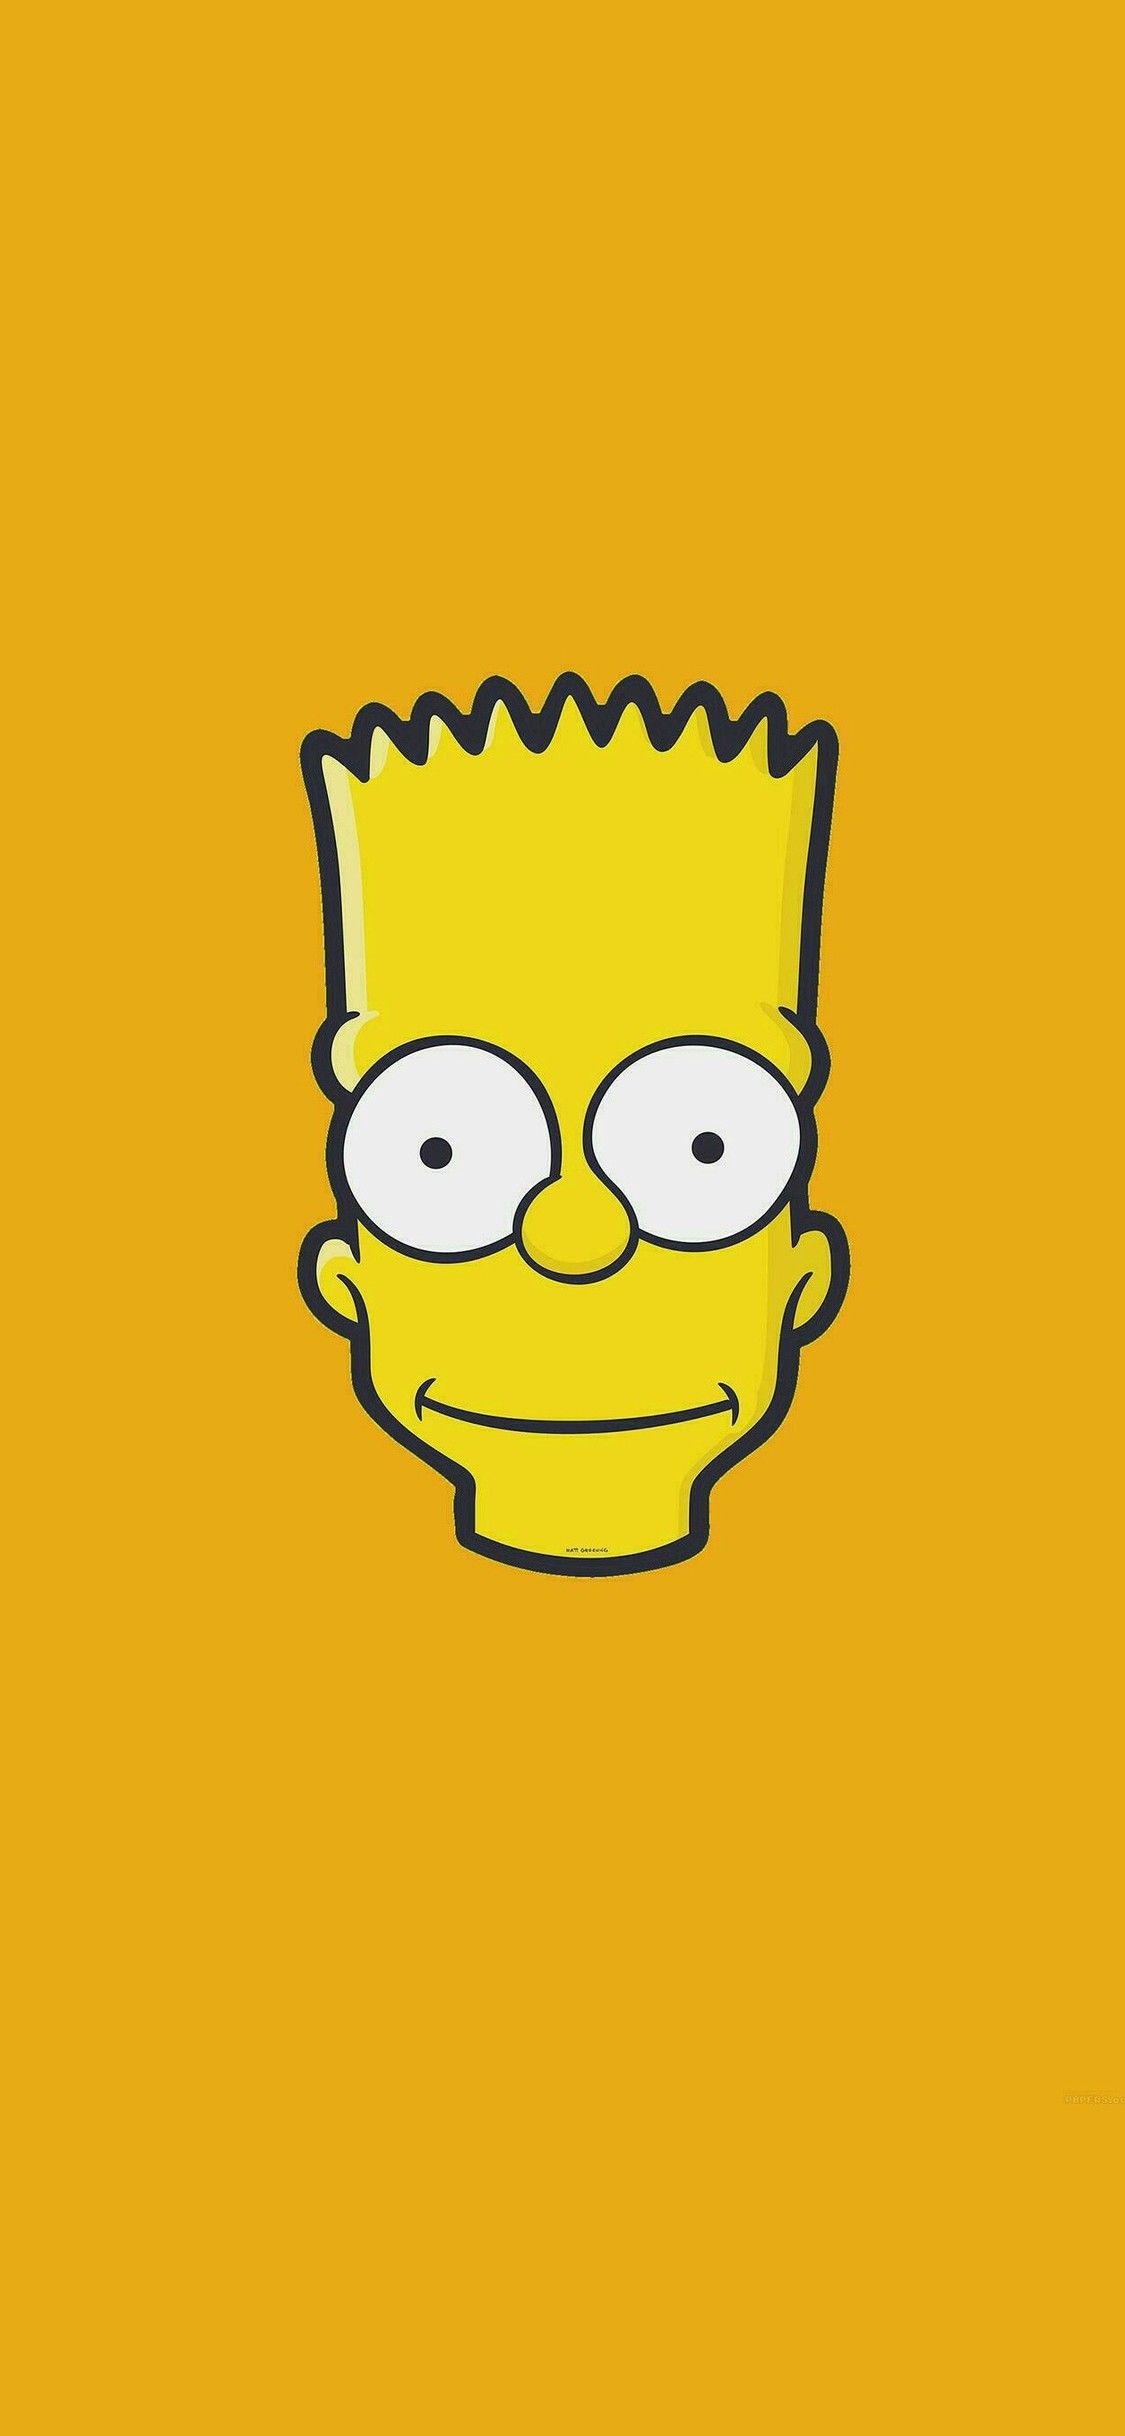 Bart Simpson Iphone Wallpapers Top Free Bart Simpson Iphone Backgrounds Wallpaperaccess